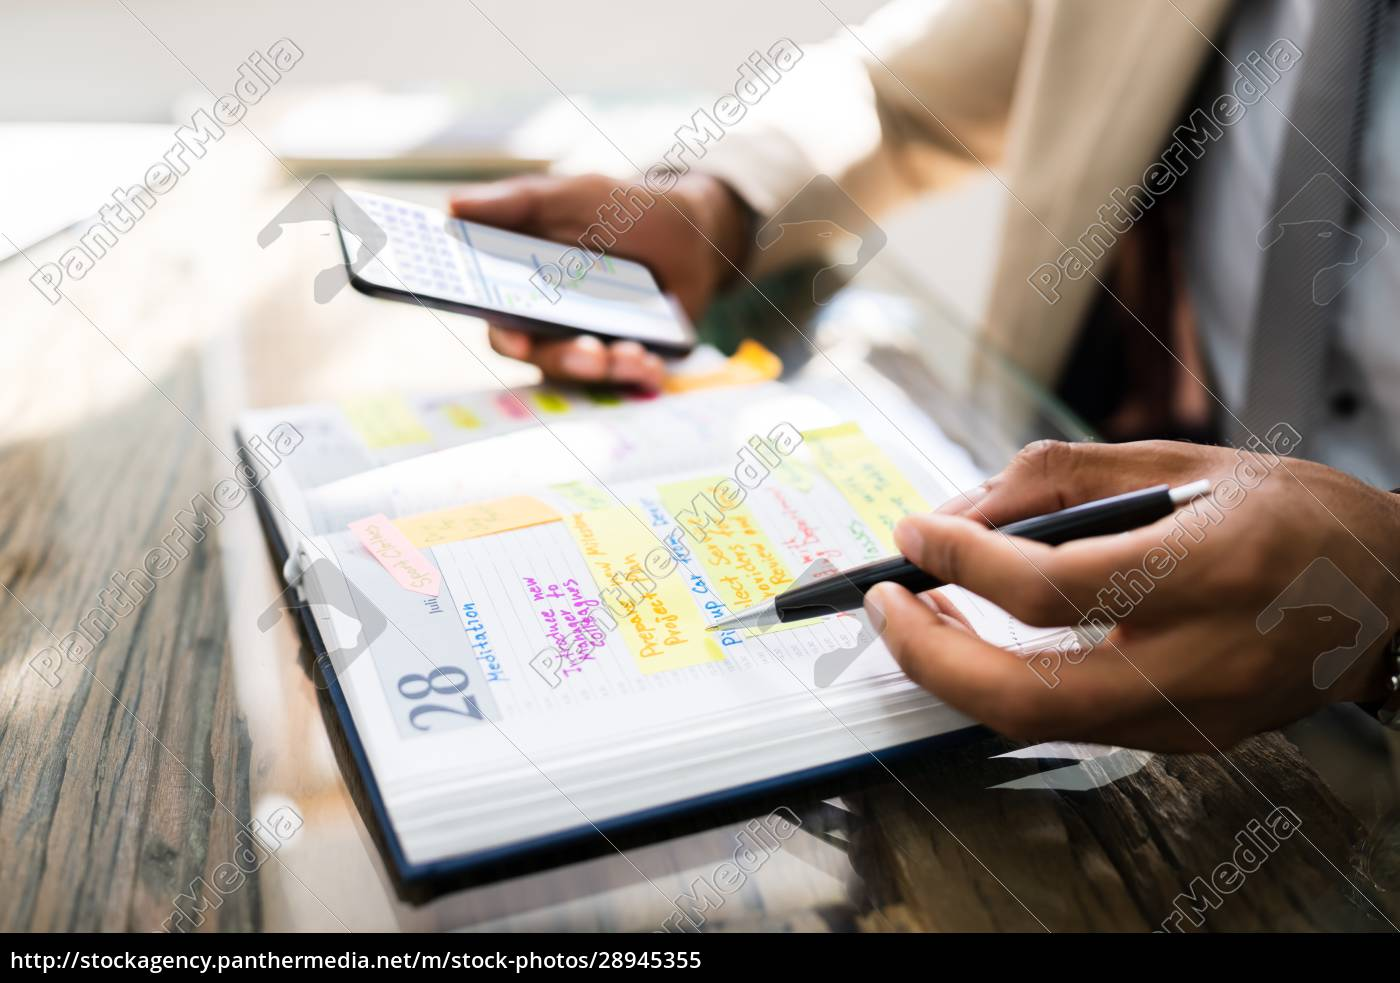 african, man, organizing, appointment, calendar, schedule - 28945355